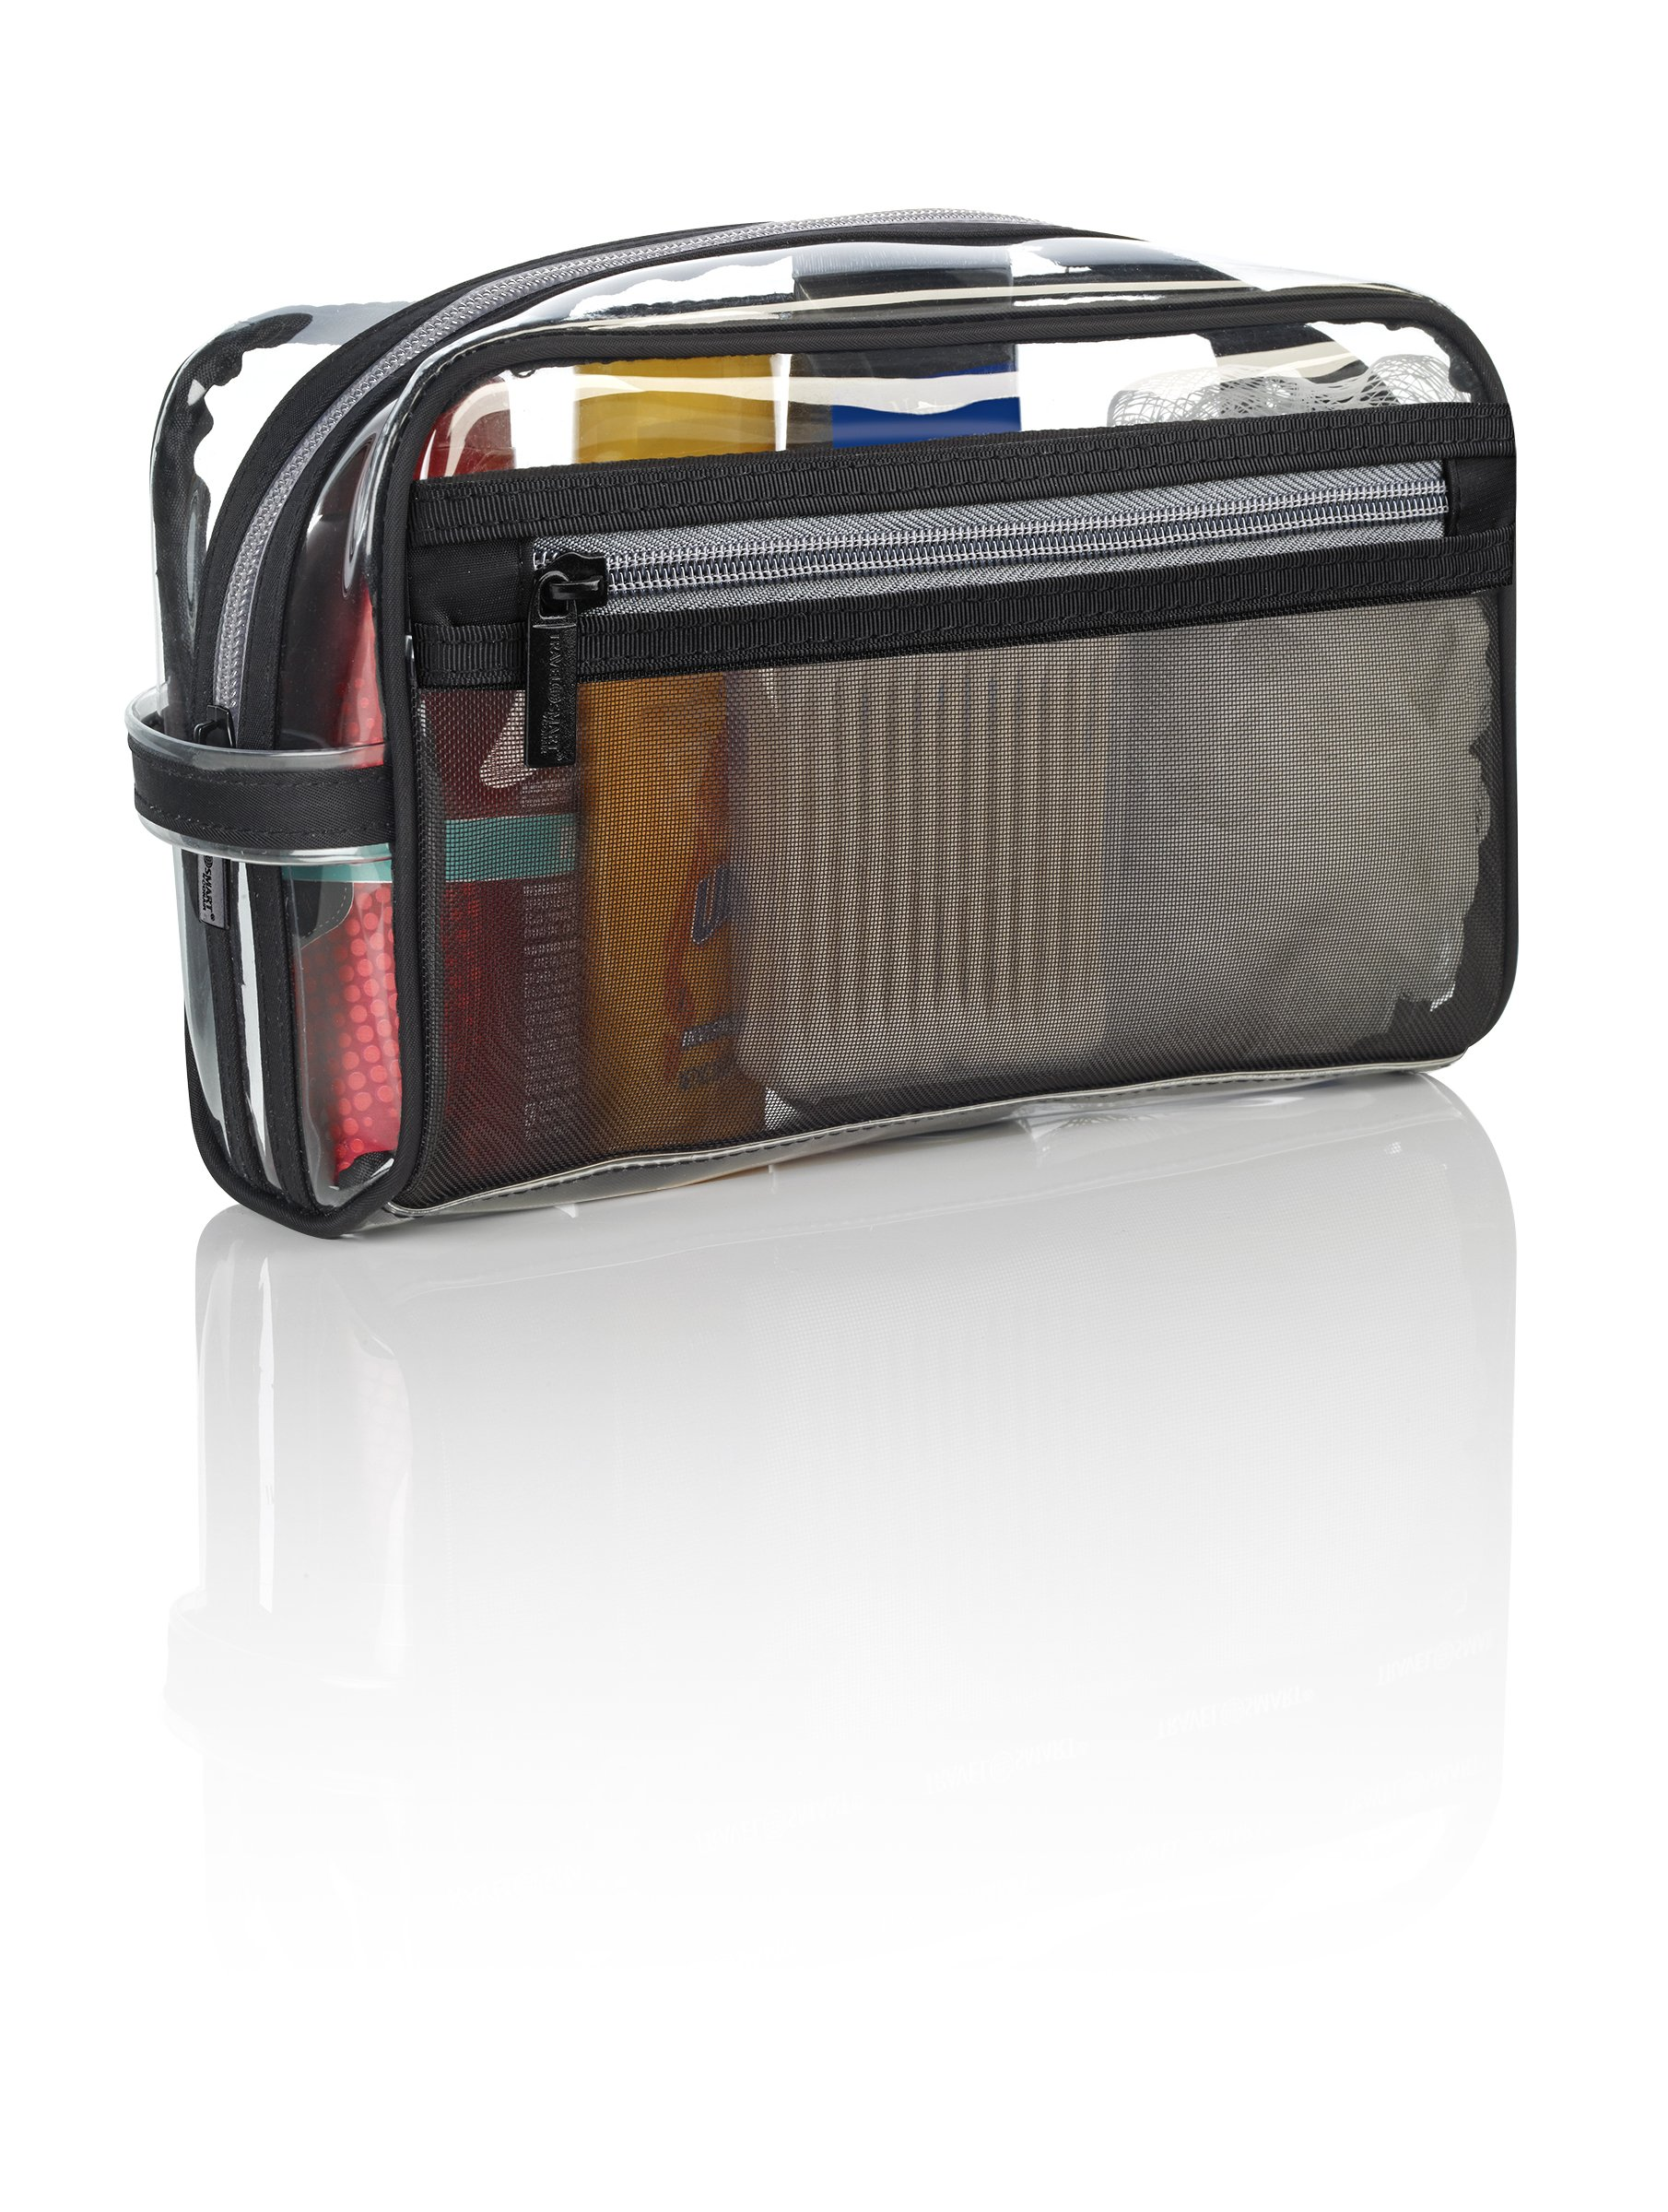 Travel Smart by Conair Sundry/Cosmetic Bag